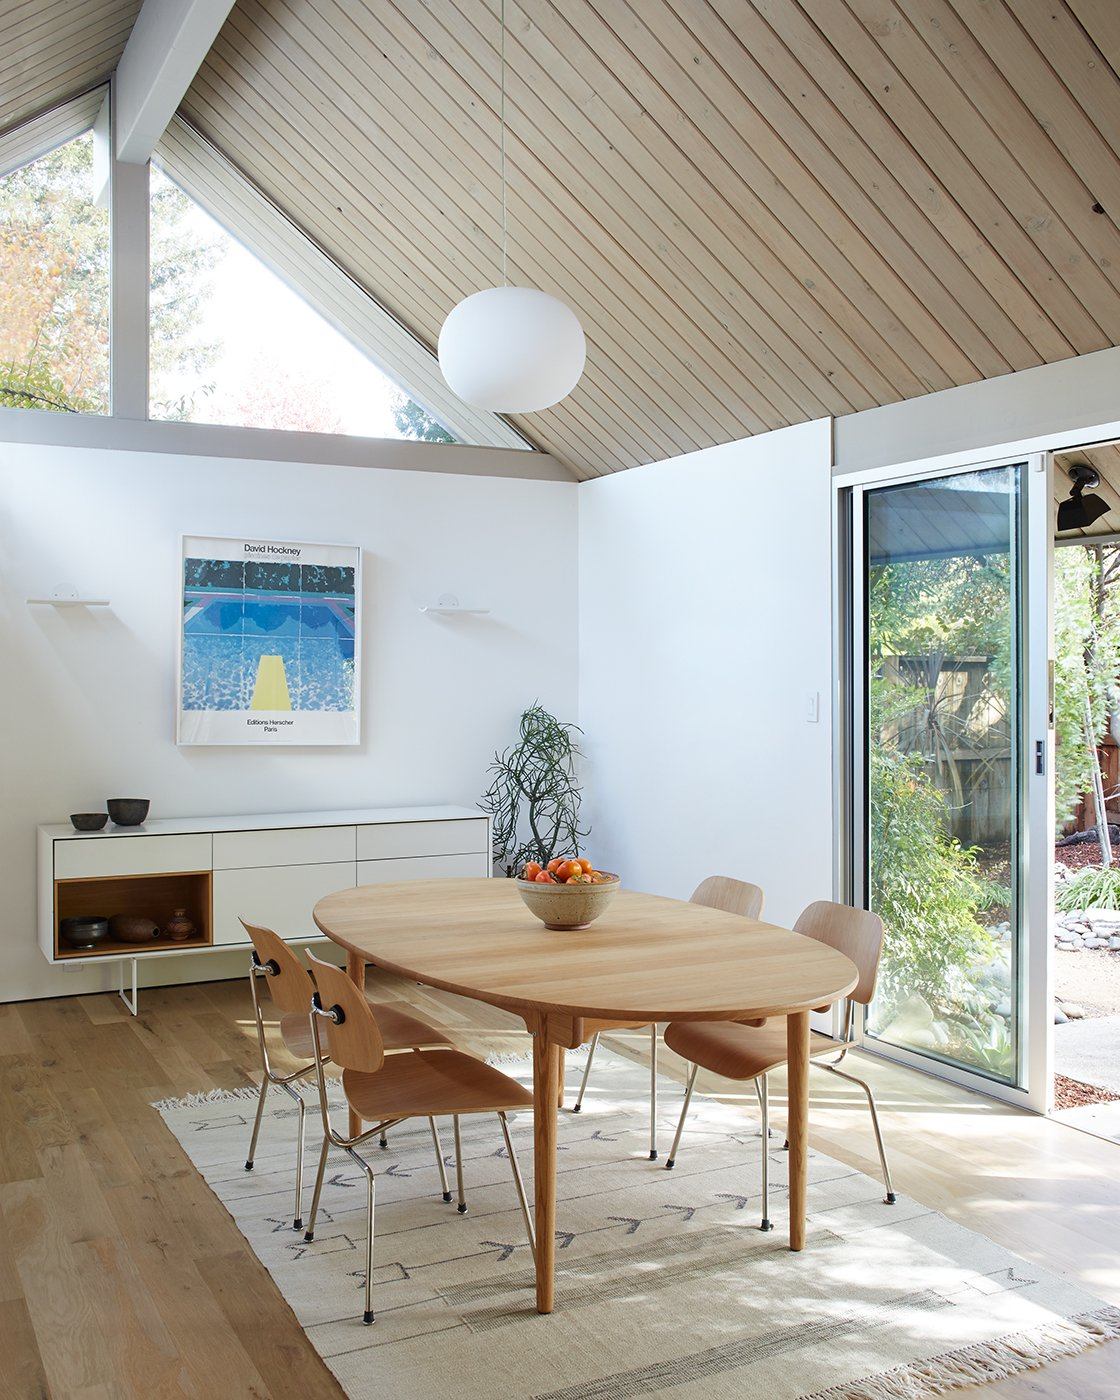 Eichler home - Reenwood House - dining area